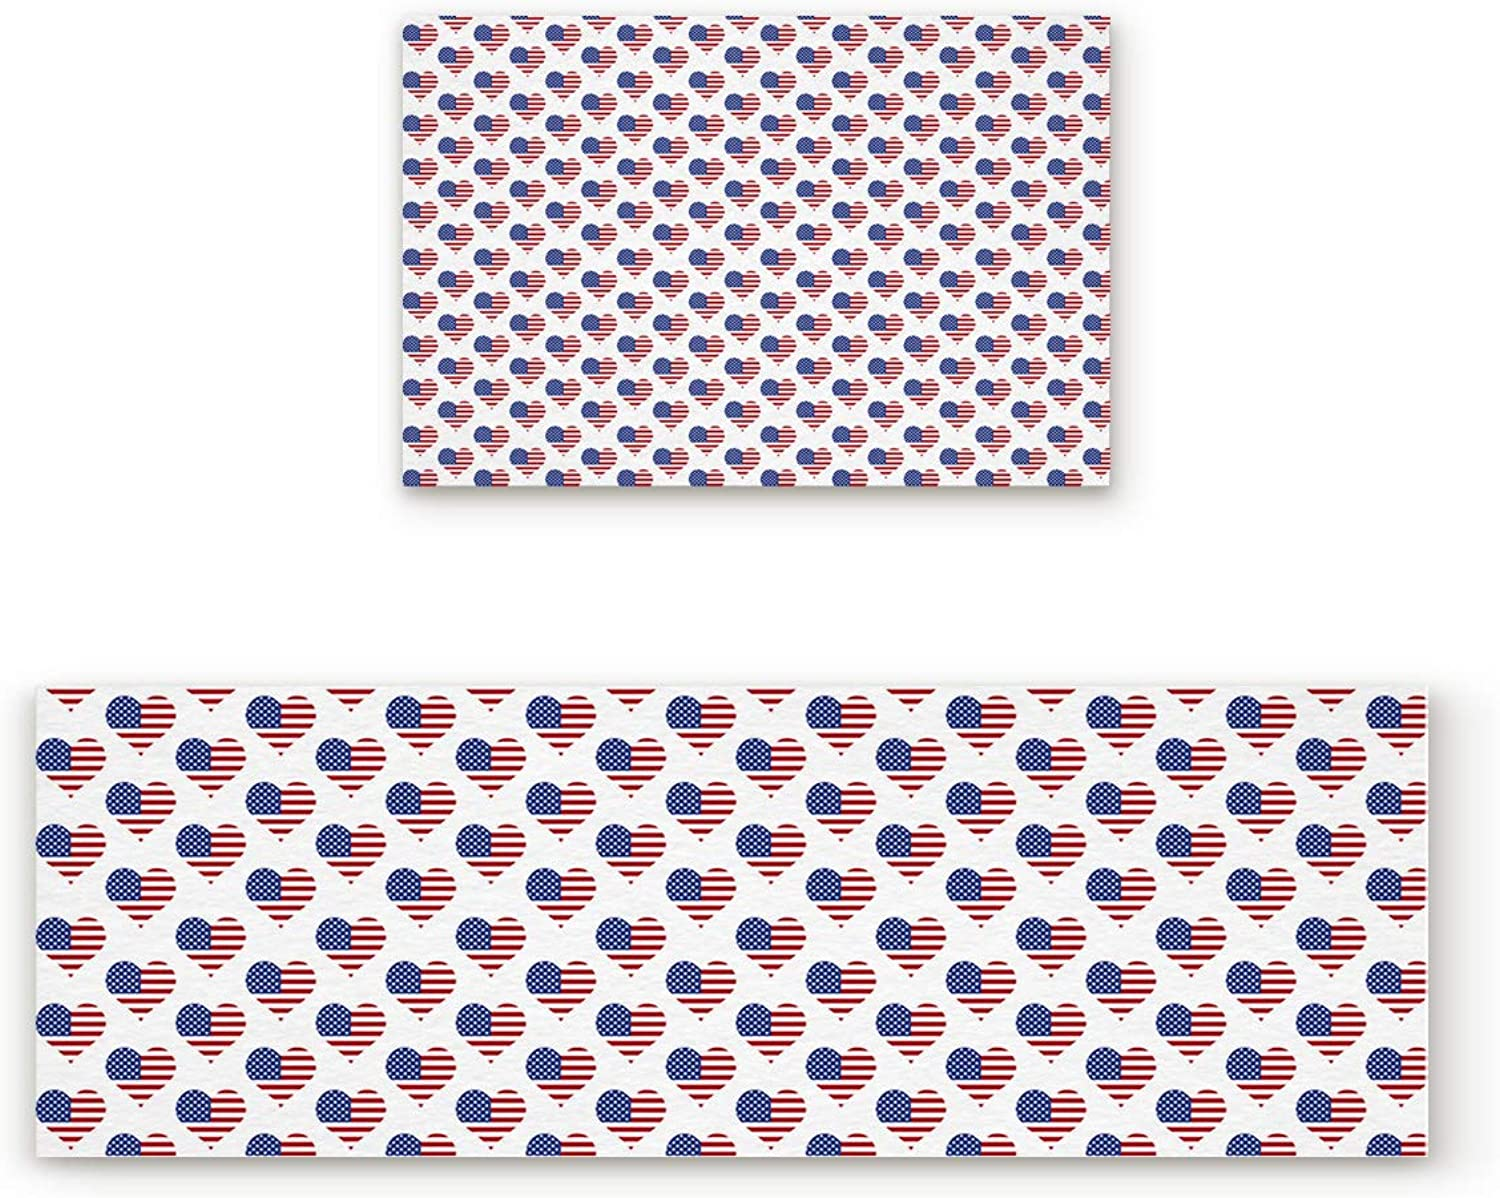 SODIKA Non Slip Kitchen Rug Set 2 Piece, Floor Mat Carpet Runner,American Flag in The Shape of Heart (19.7x31.5in+19.7x63 inches)